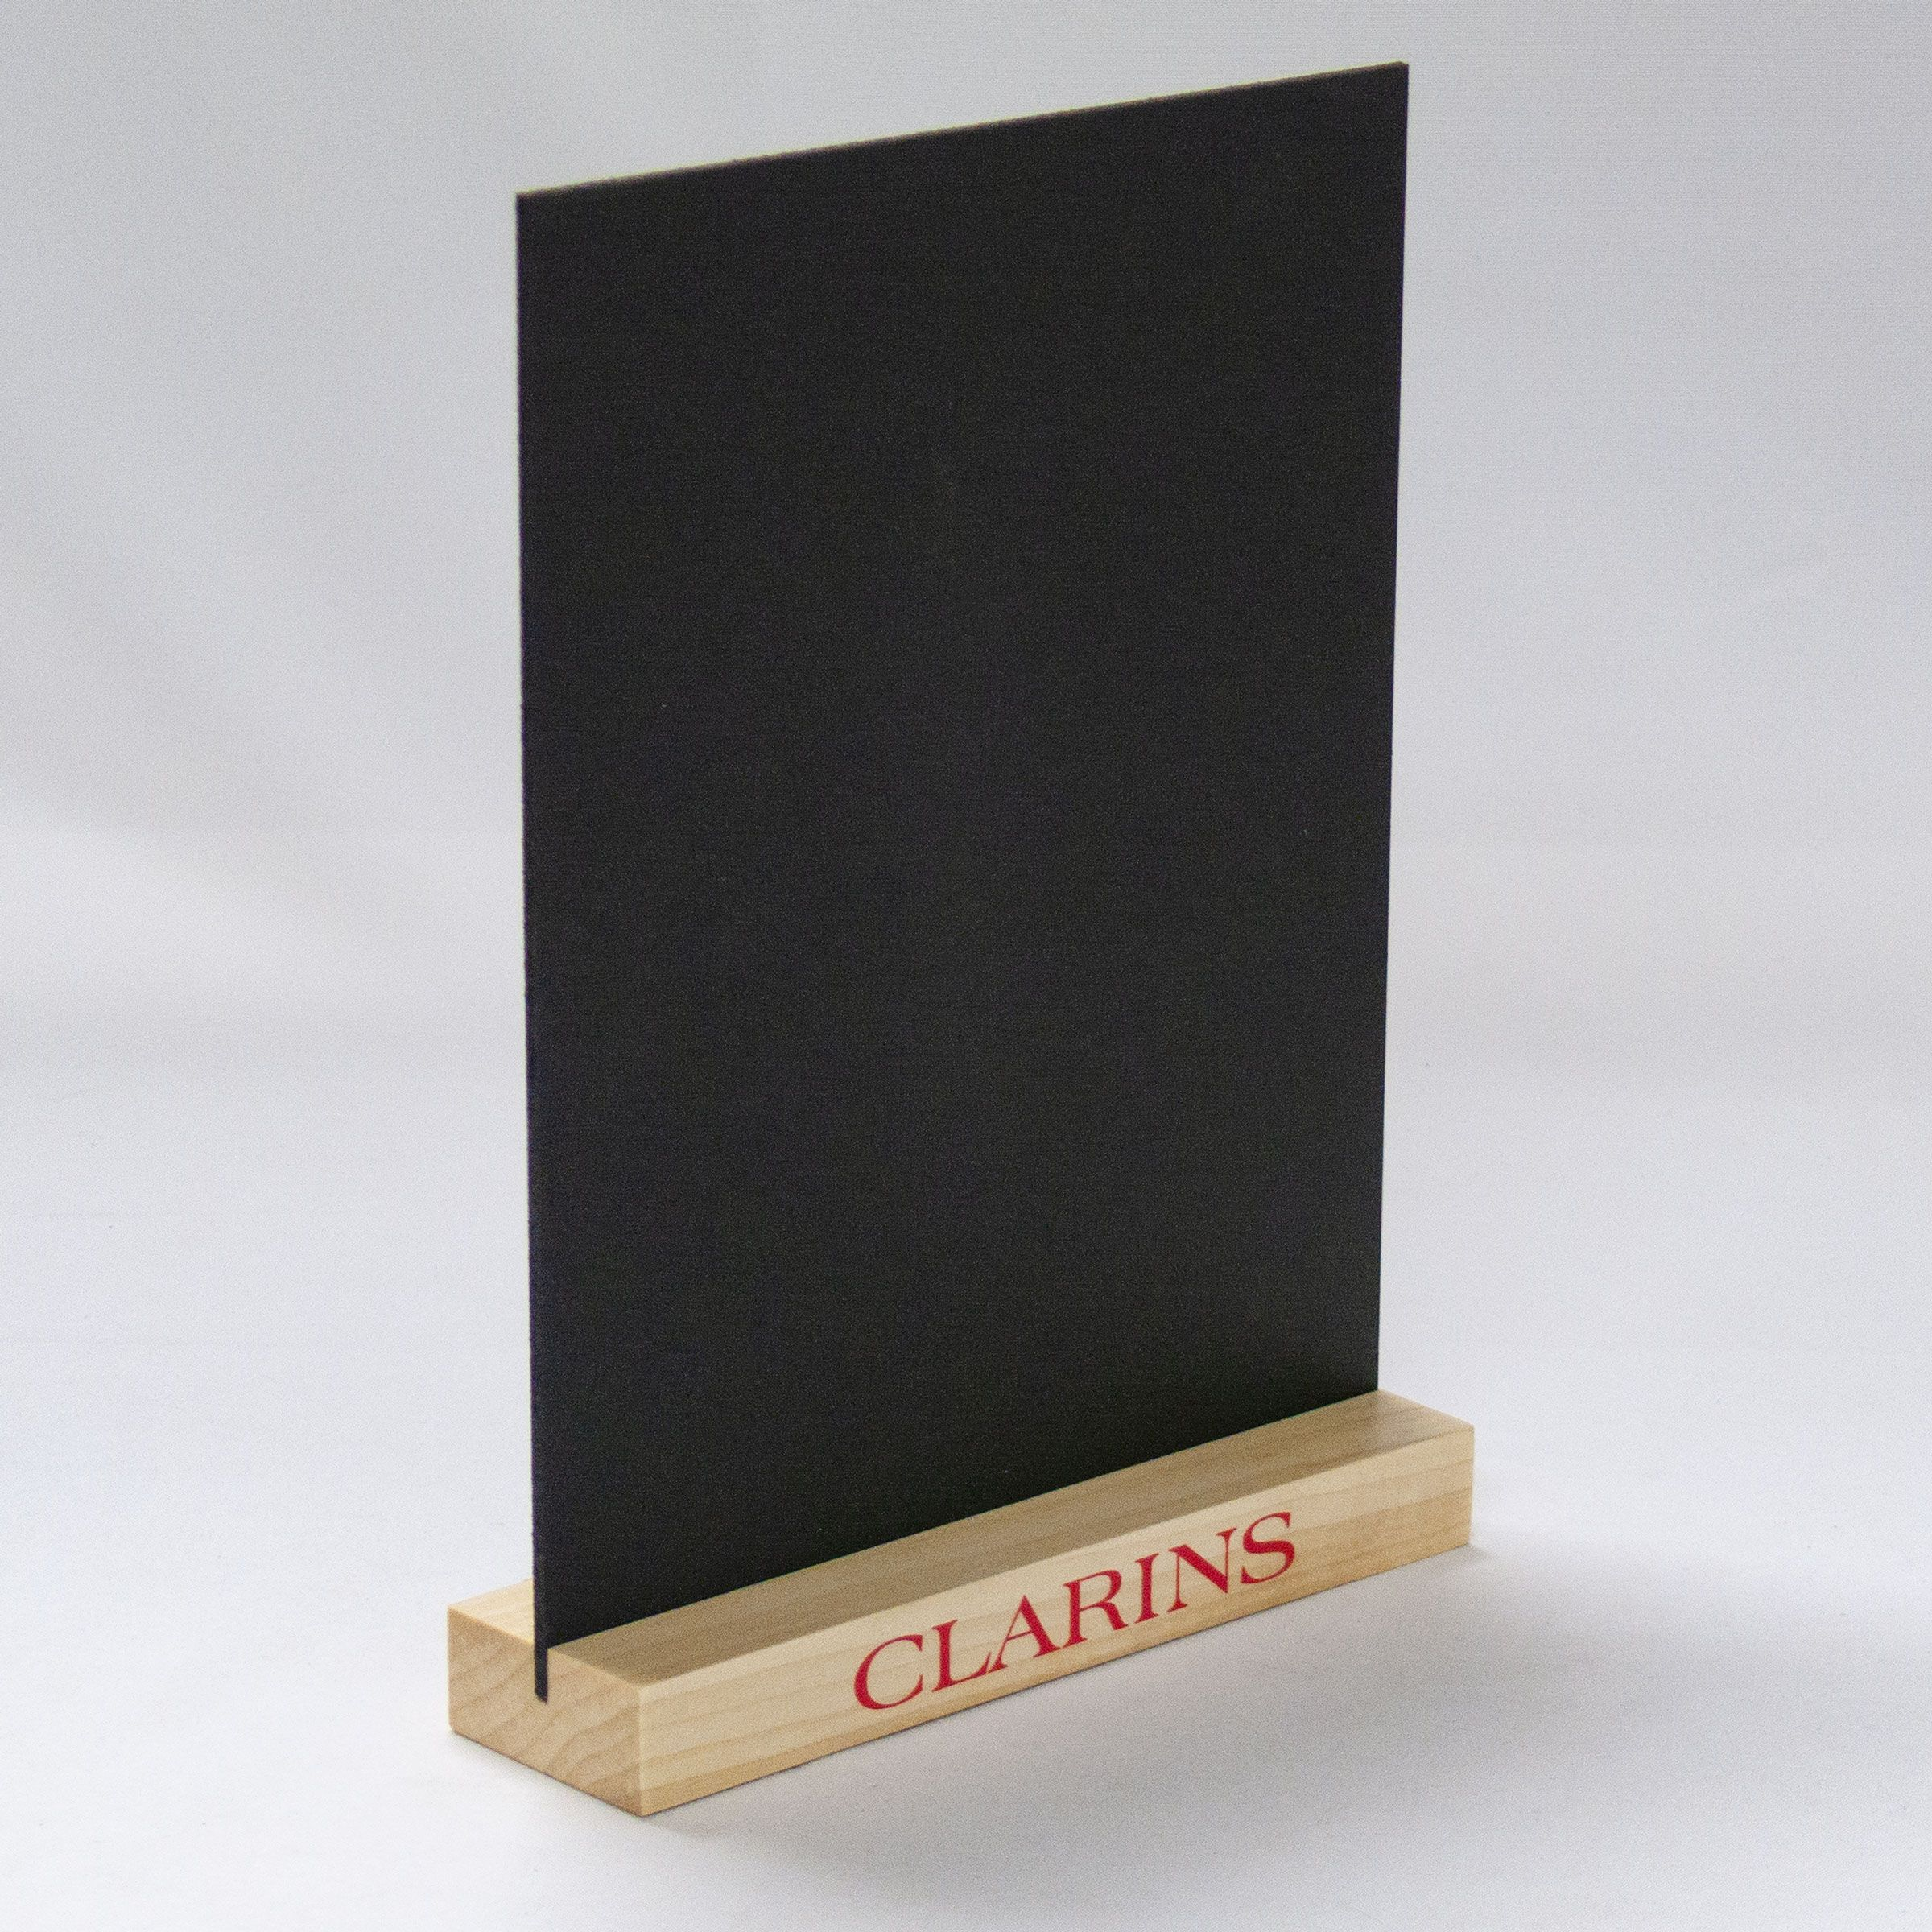 This Tabletop Sign Holder Can Support An 8 5x11 Sign Holder Or